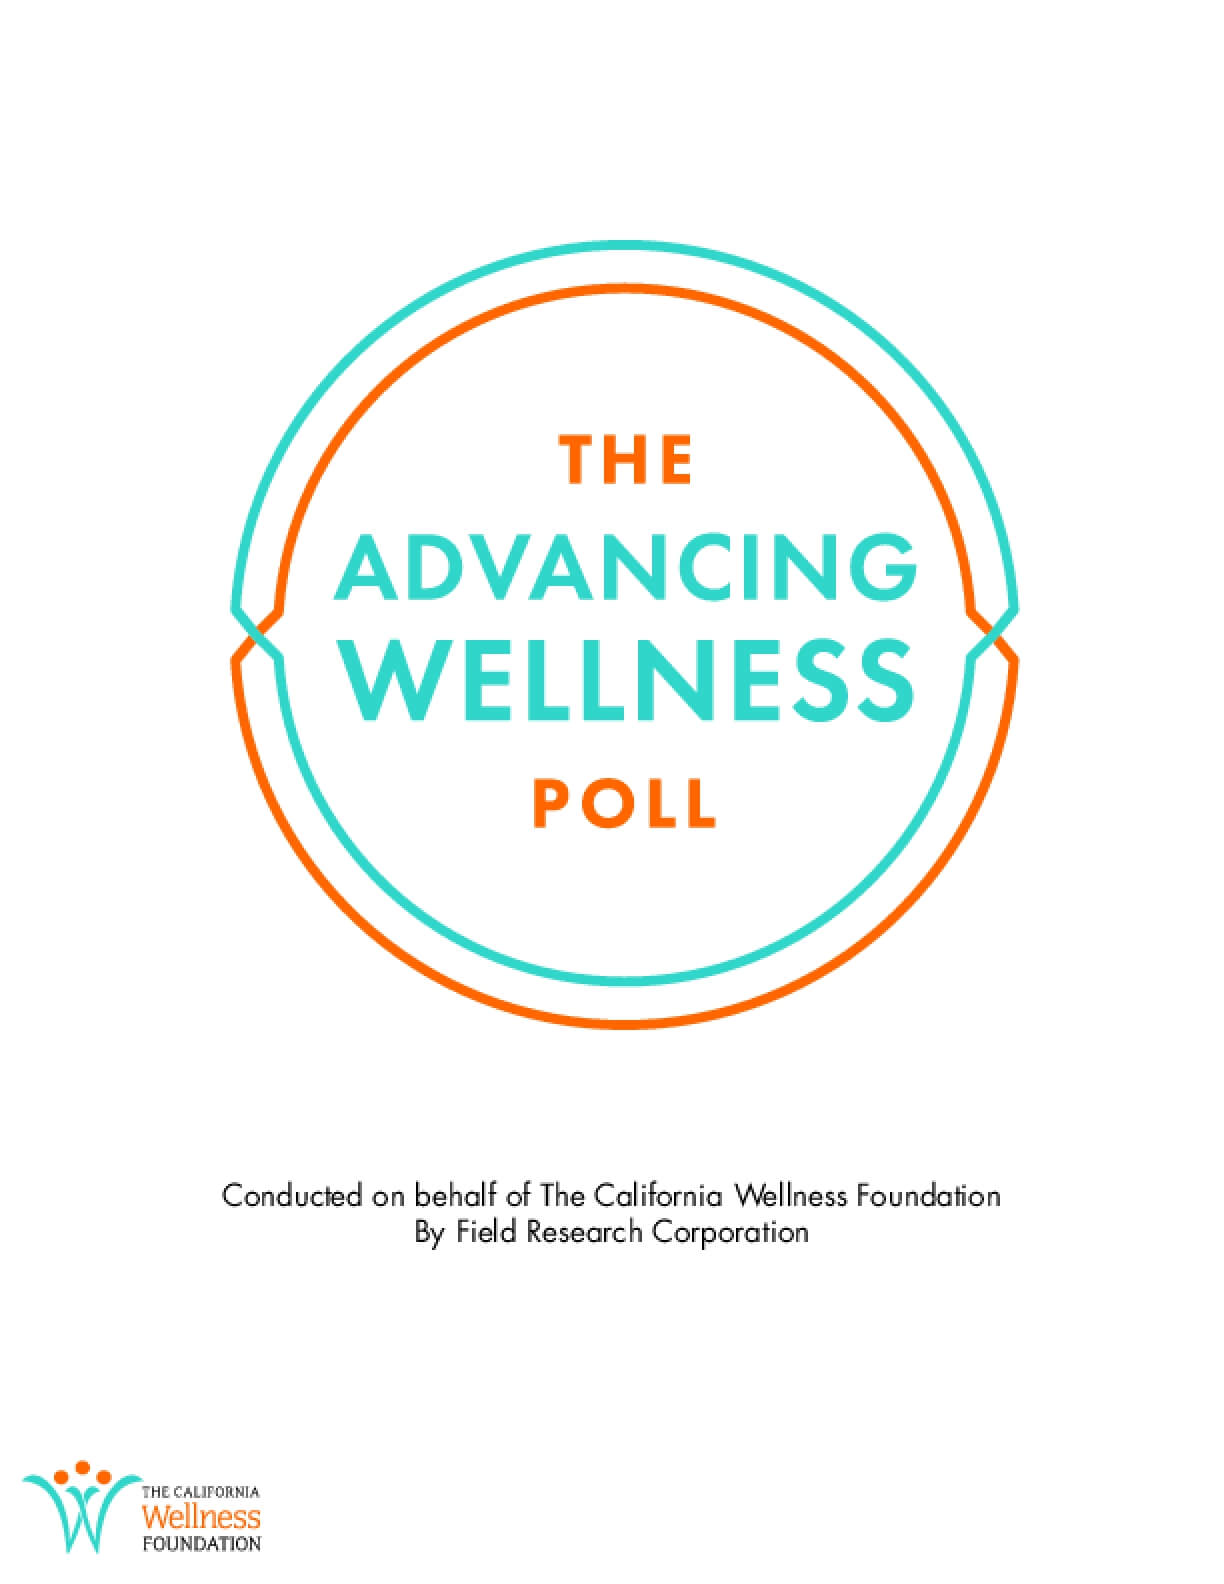 The Advancing Wellness Poll